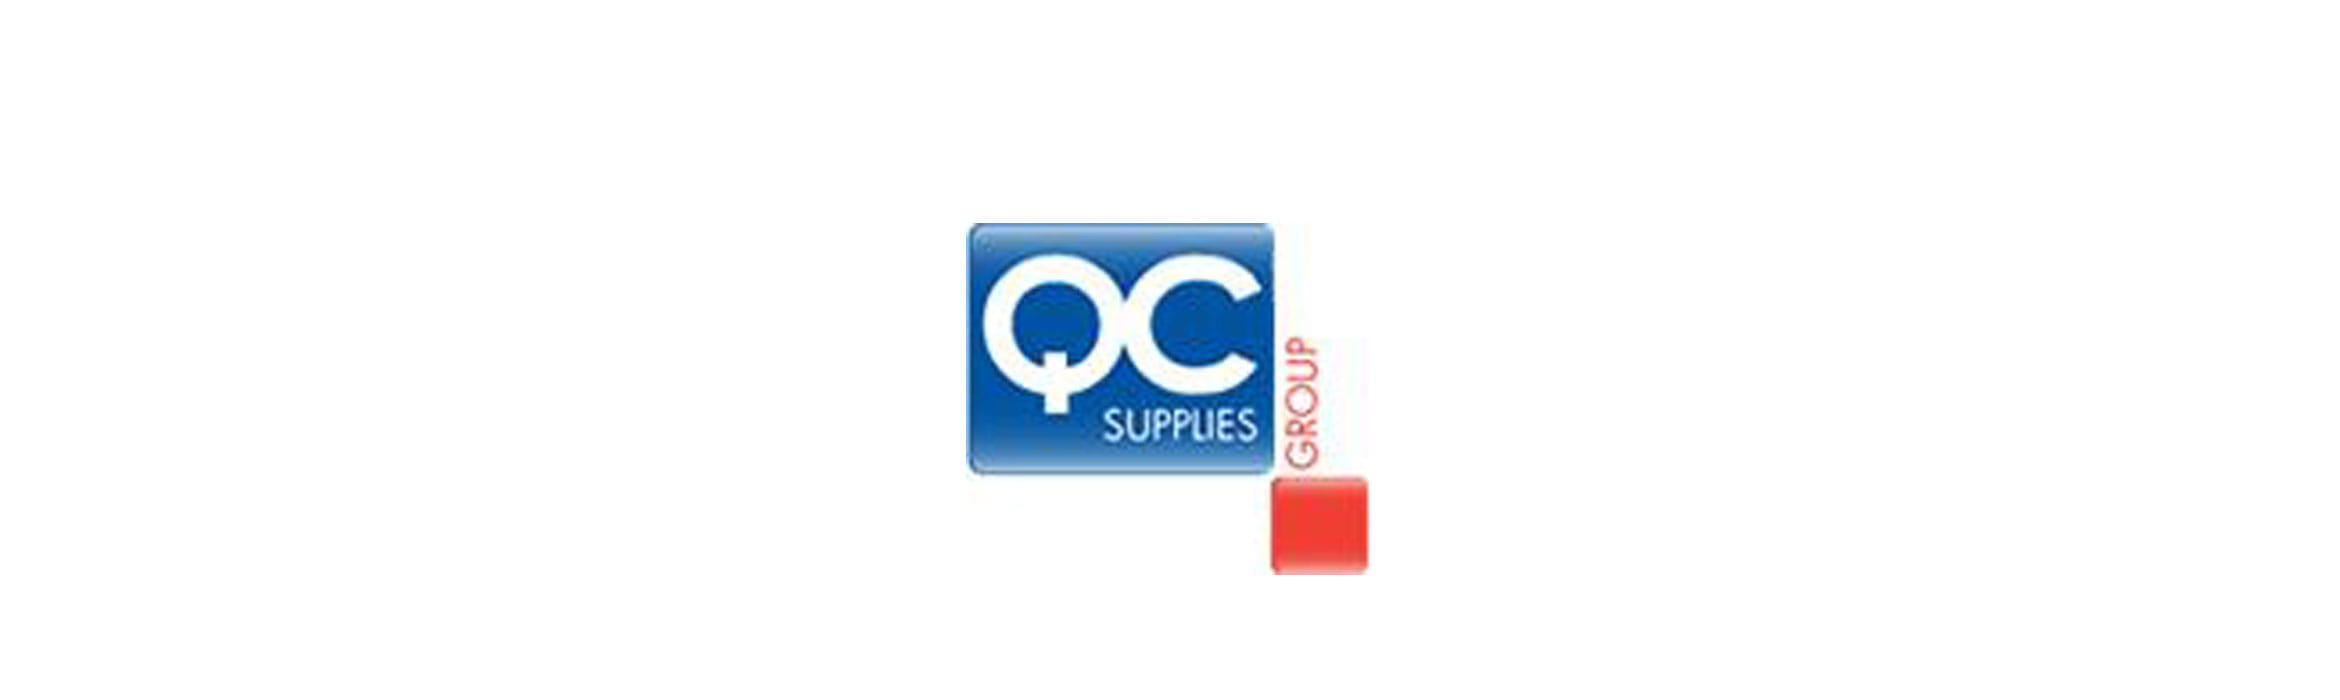 qc supplies logo